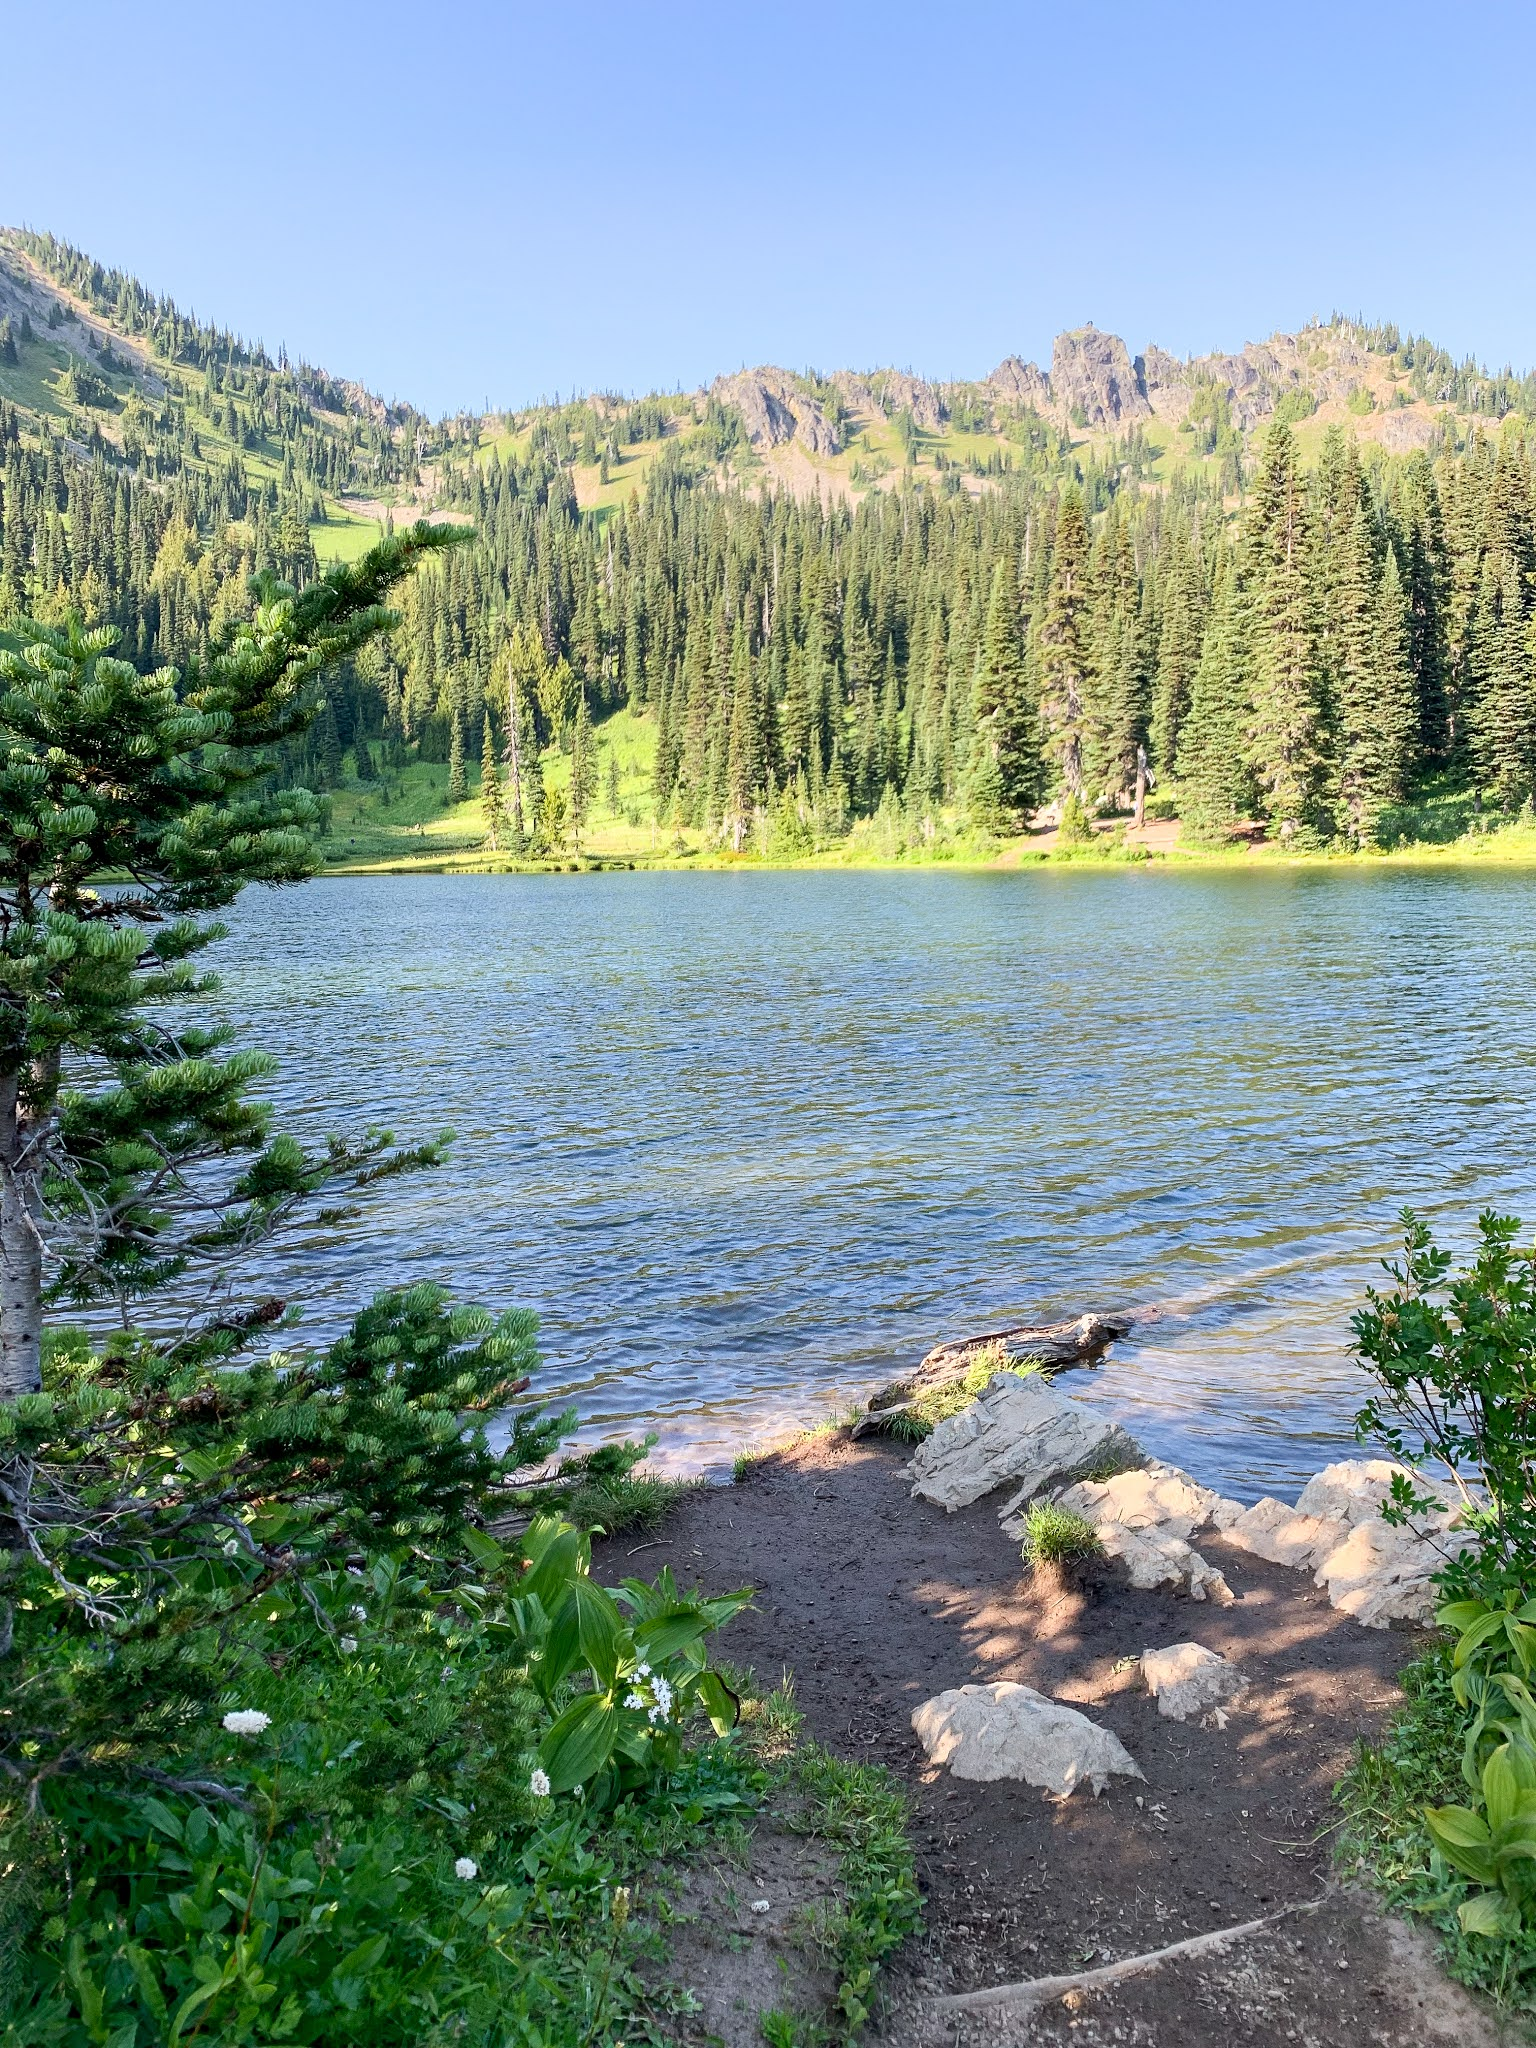 6 of the best hikes in Washington State